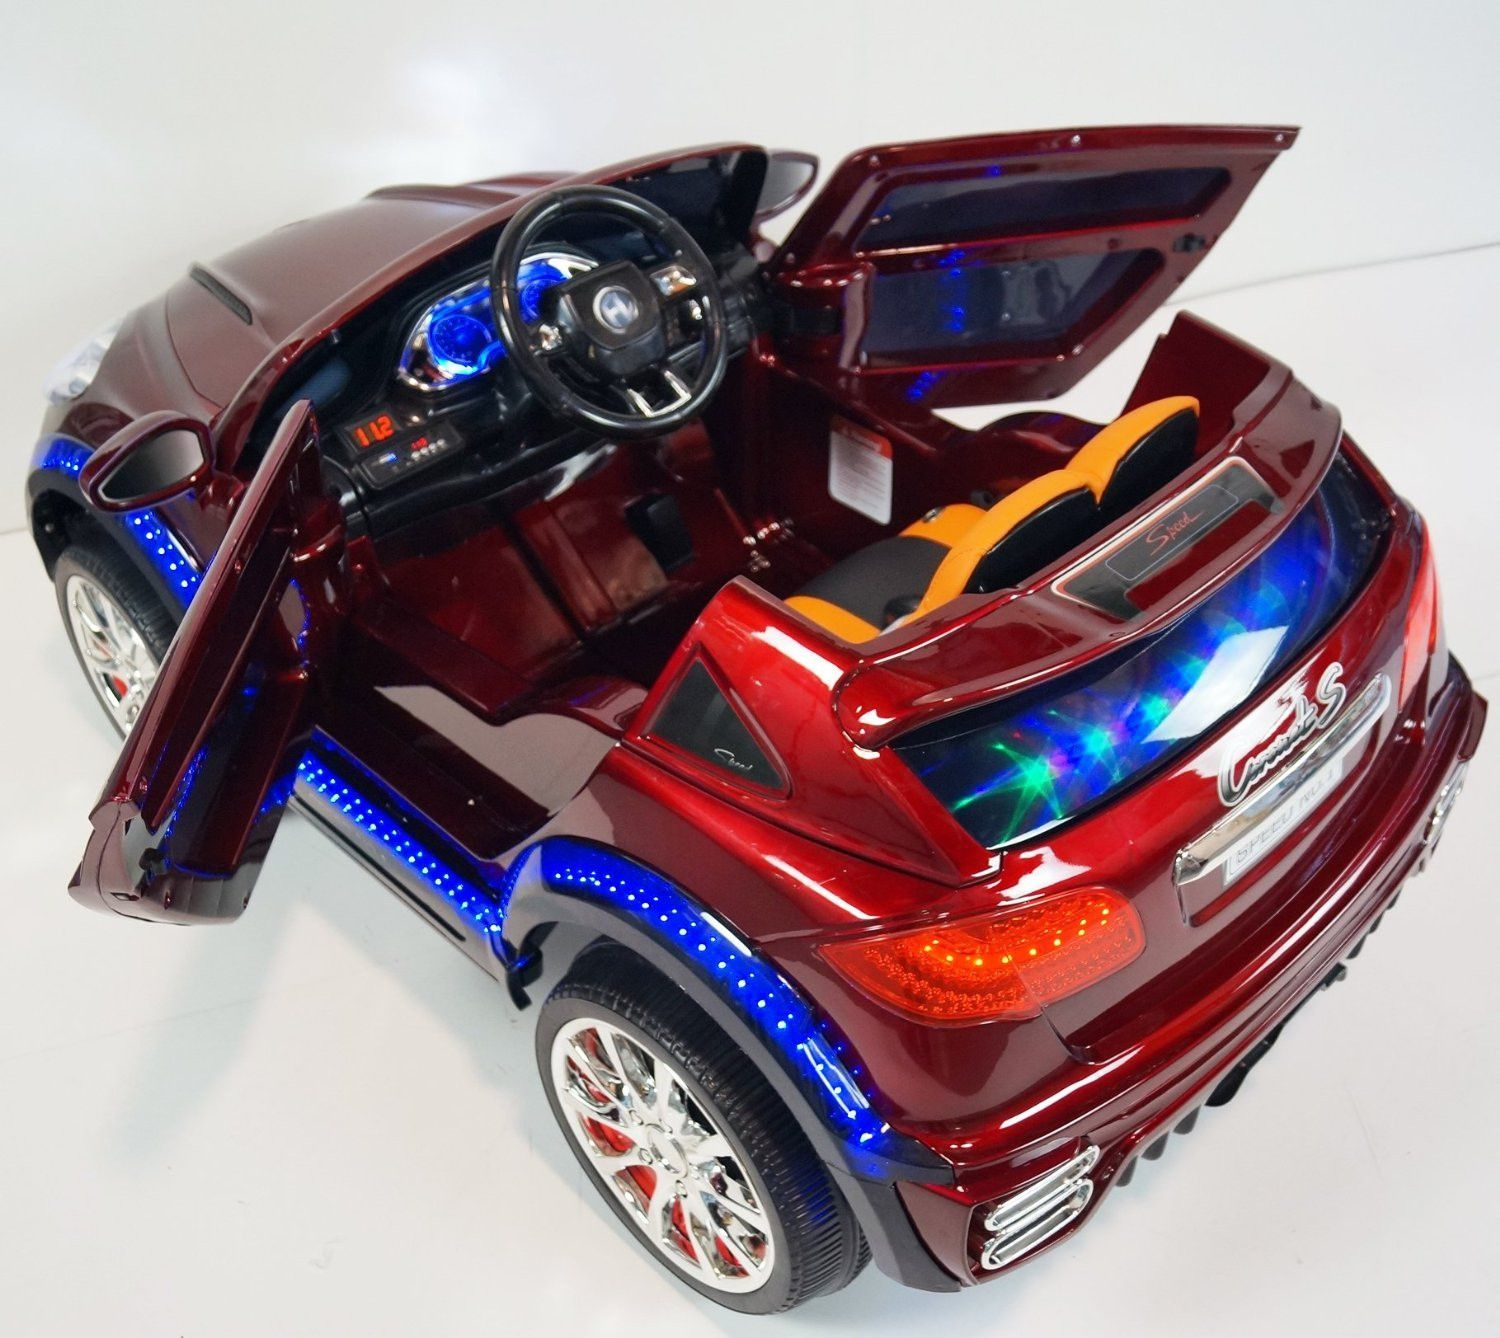 Porsche Cayenne style 2016 Ride On Car For Kids with